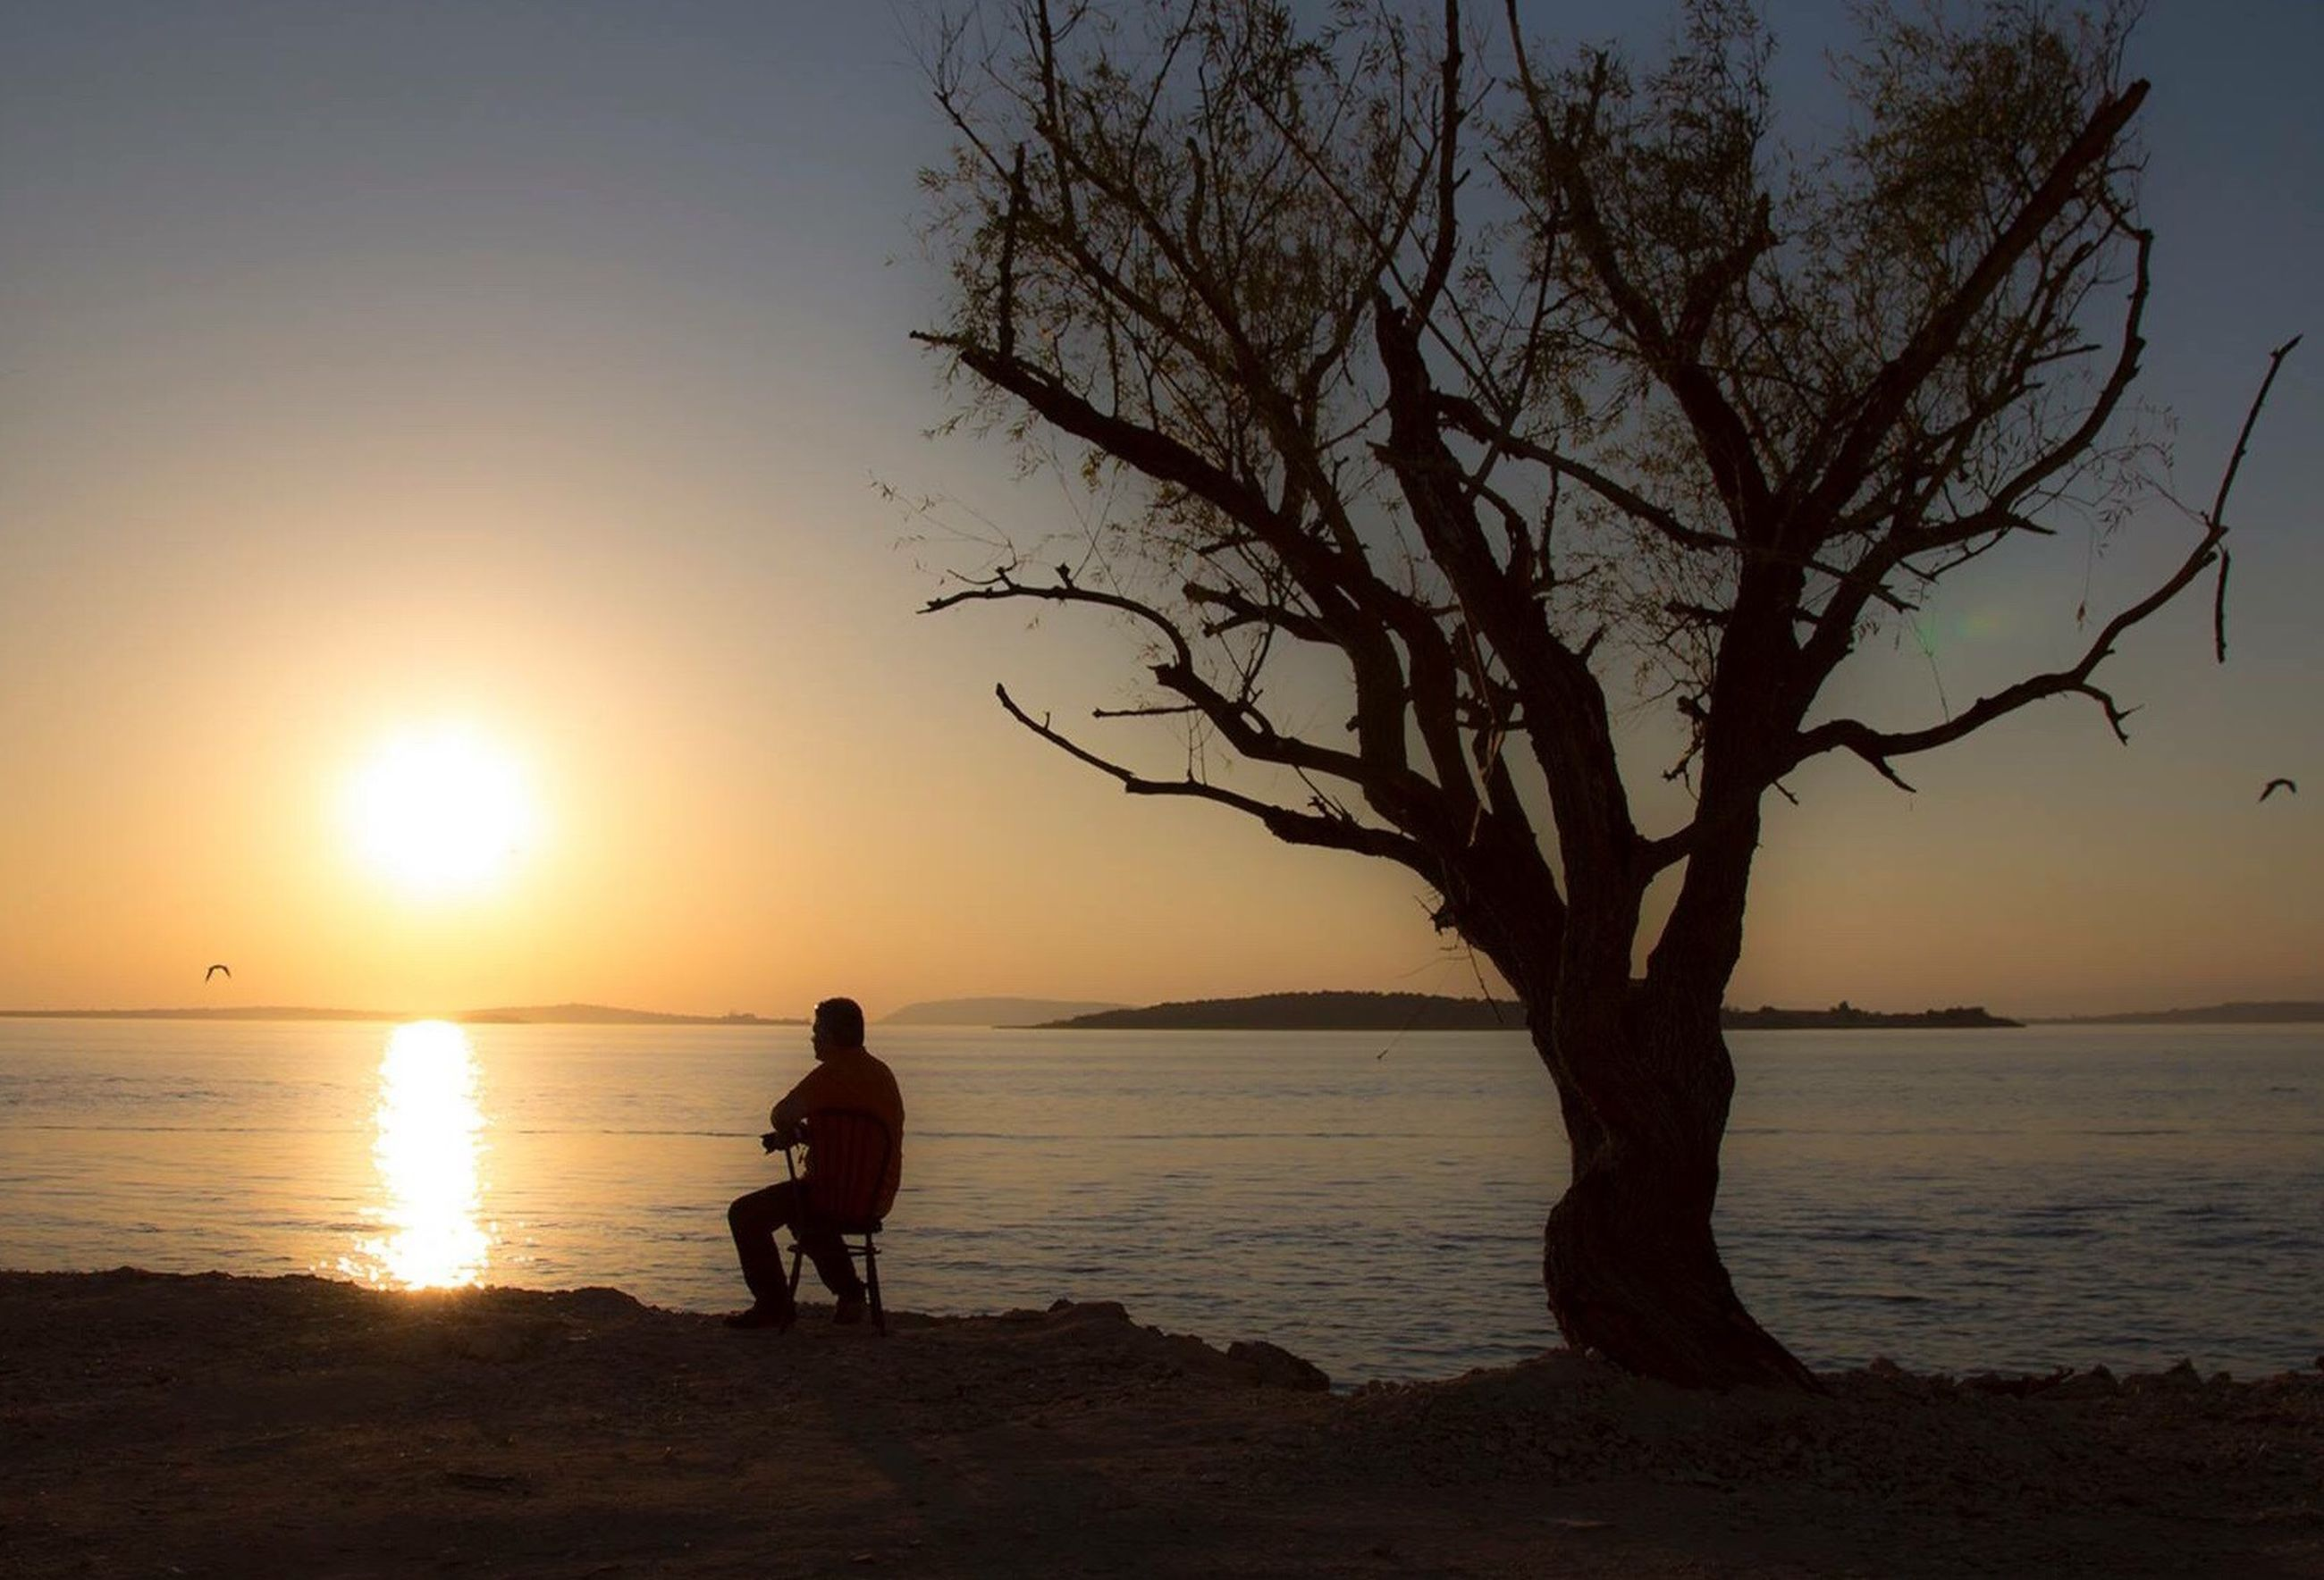 sunset, sea, full length, one person, beach, beauty in nature, one man only, nature, only men, tranquility, tree, people, outdoors, water, silhouette, adults only, sun, scenics, branch, pets, sky, dog, real people, horizon over water, adult, human body part, day